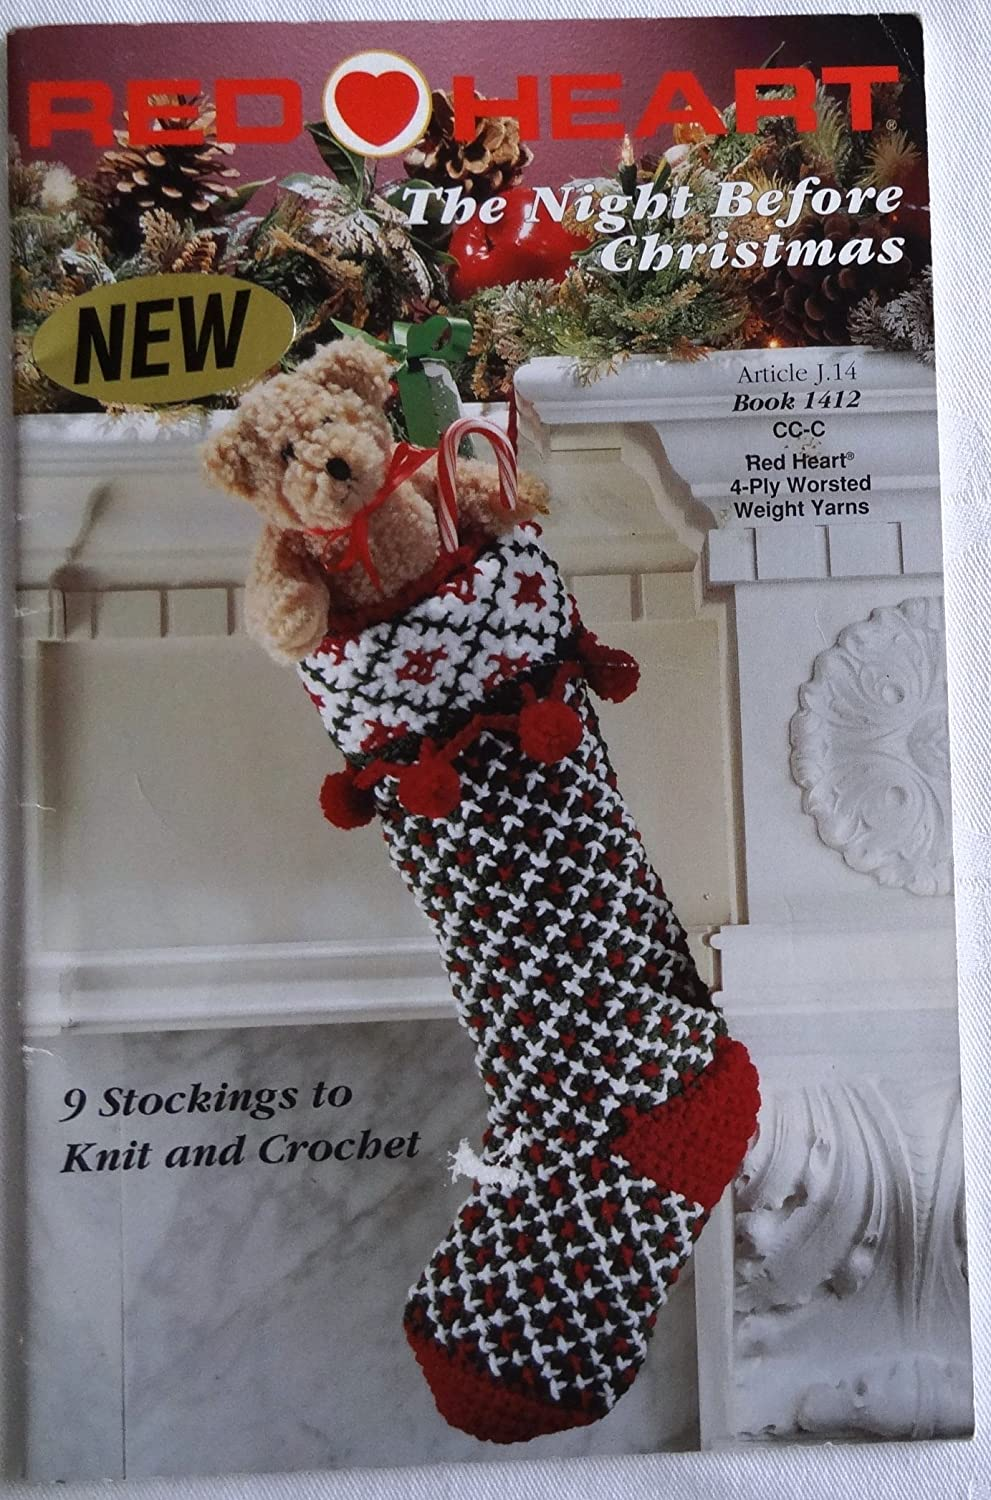 Redheart - The Night Before Christmas - 9 Stockings to Knit and Crochet (Book 1412) various